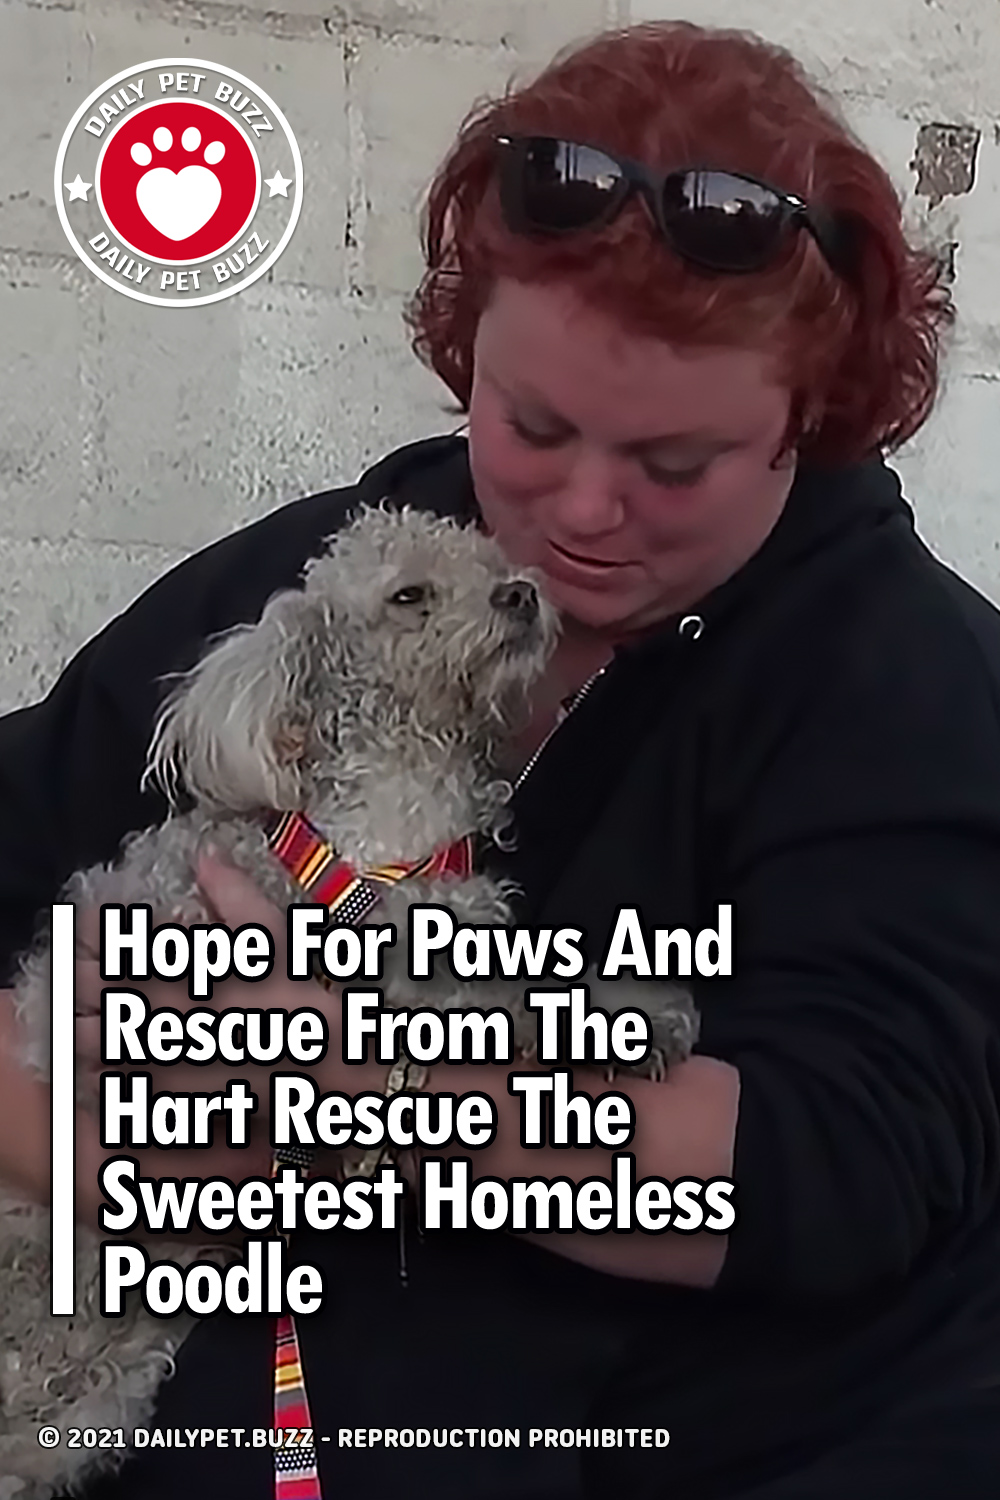 Hope For Paws And Rescue From The Hart Rescue The Sweetest Homeless Poodle